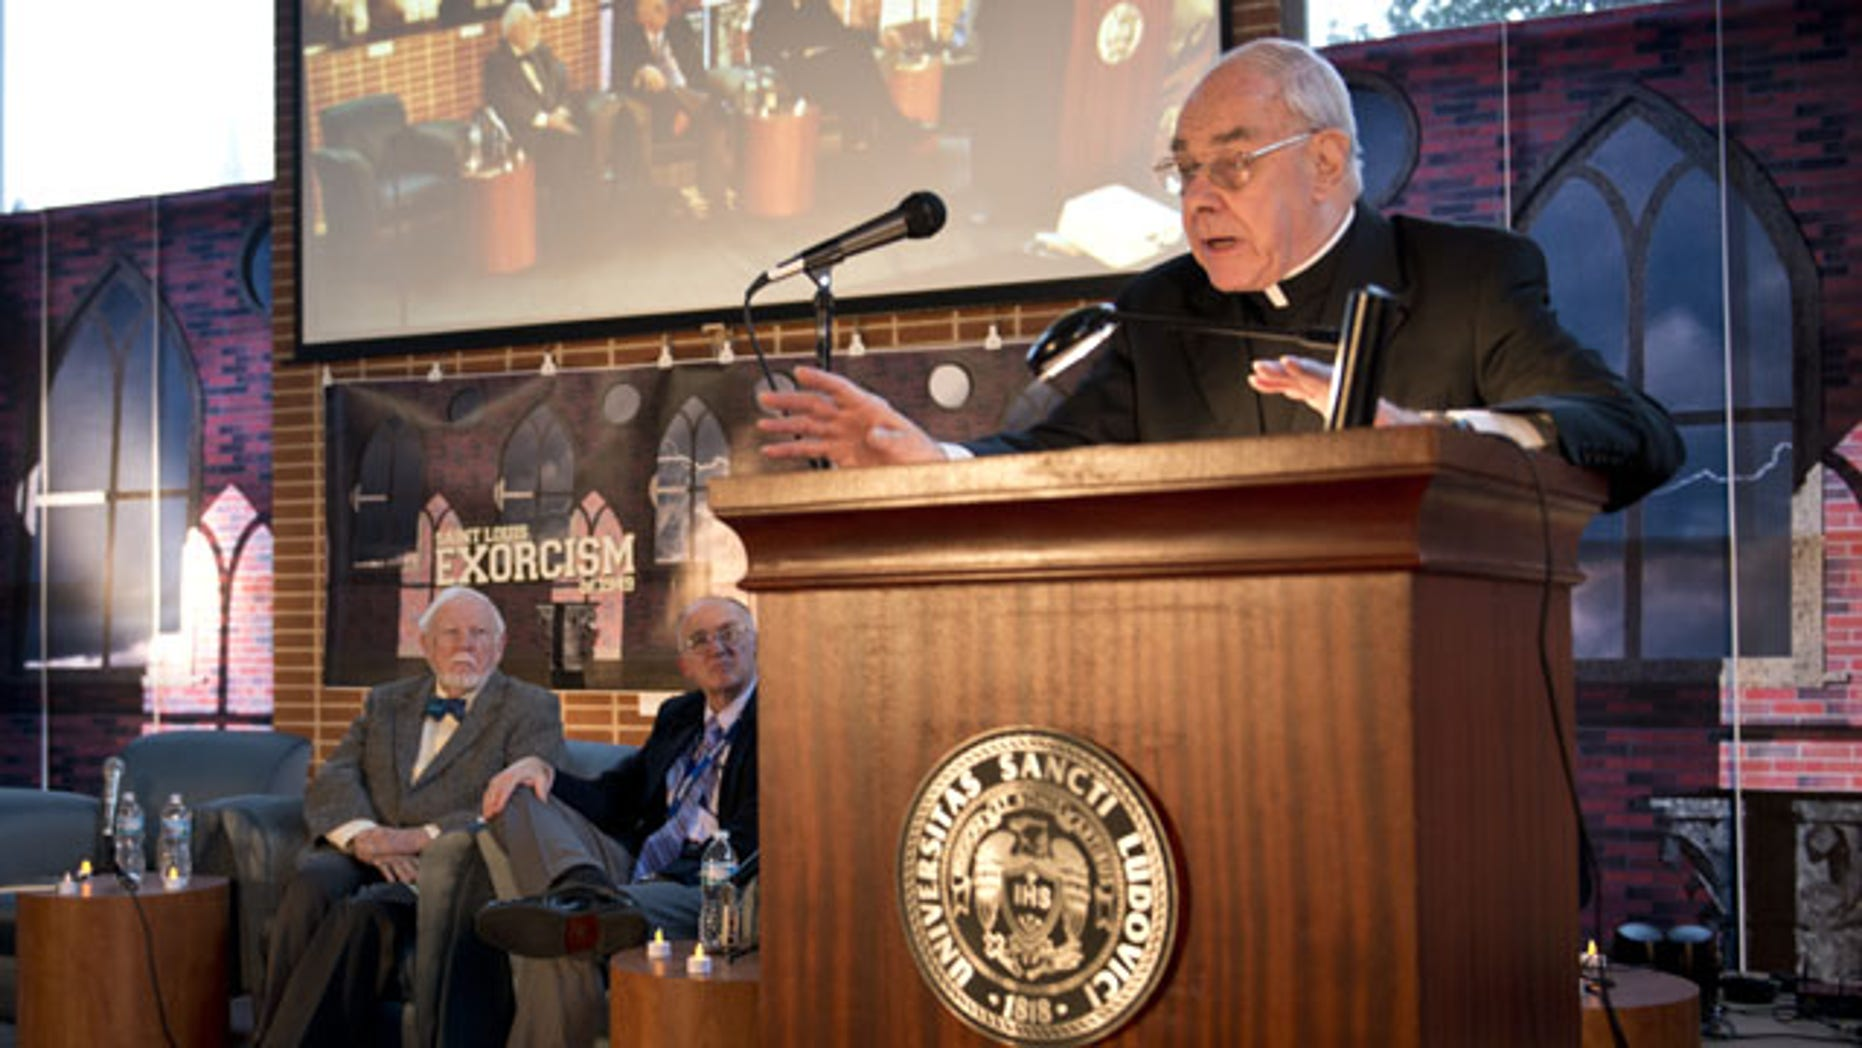 October 29, 2013: In this photo provided by St. Louis University, the Rev. John Padberg, S.J., director of the Institute of Jesuit Sources, speaks during a panel discussion at St. Louis University in St. Louis about the month-long 1949 demon-purging ritual at the school's former Alexian Brothers Hospital. (AP Photo)